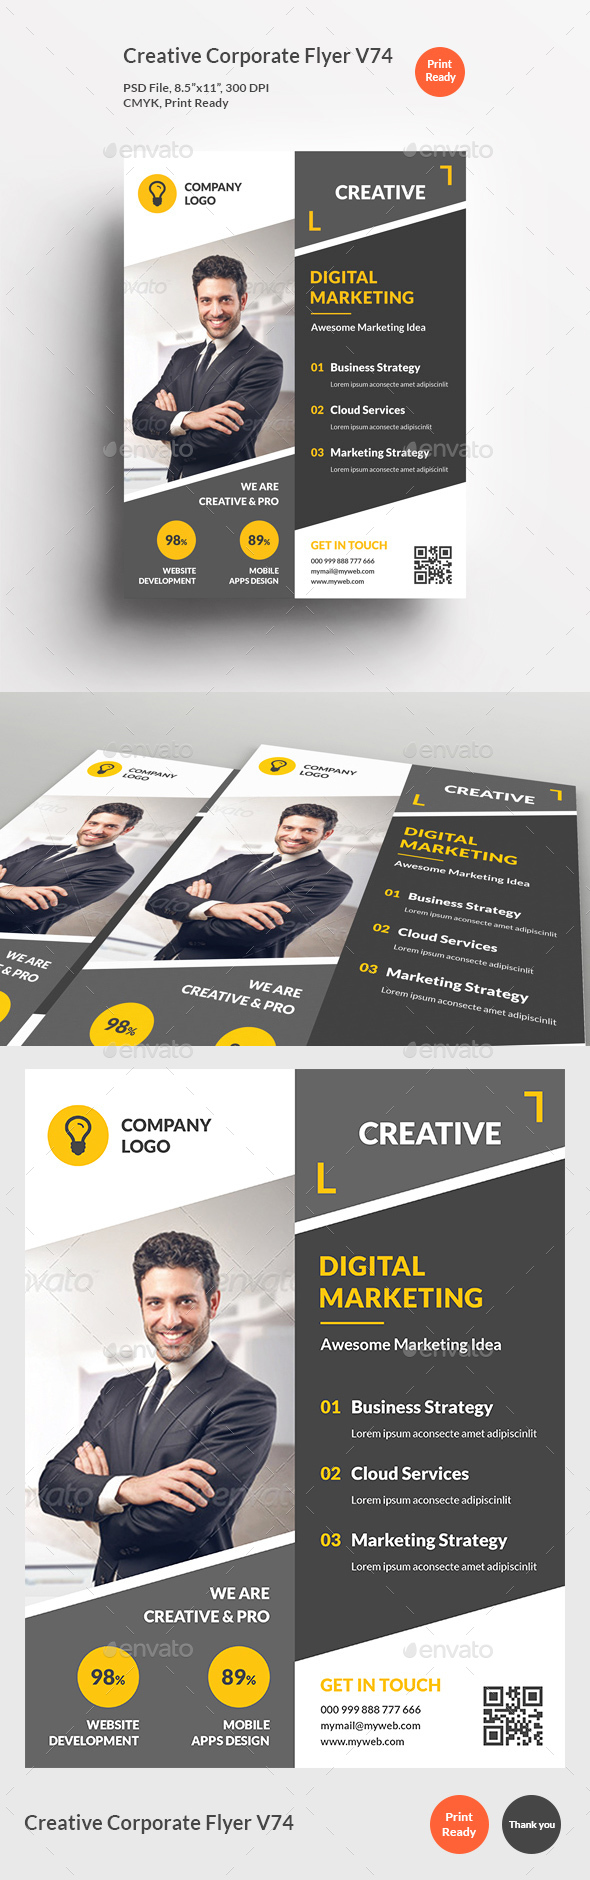 Creative Corporate Flyer V74 - Corporate Flyers